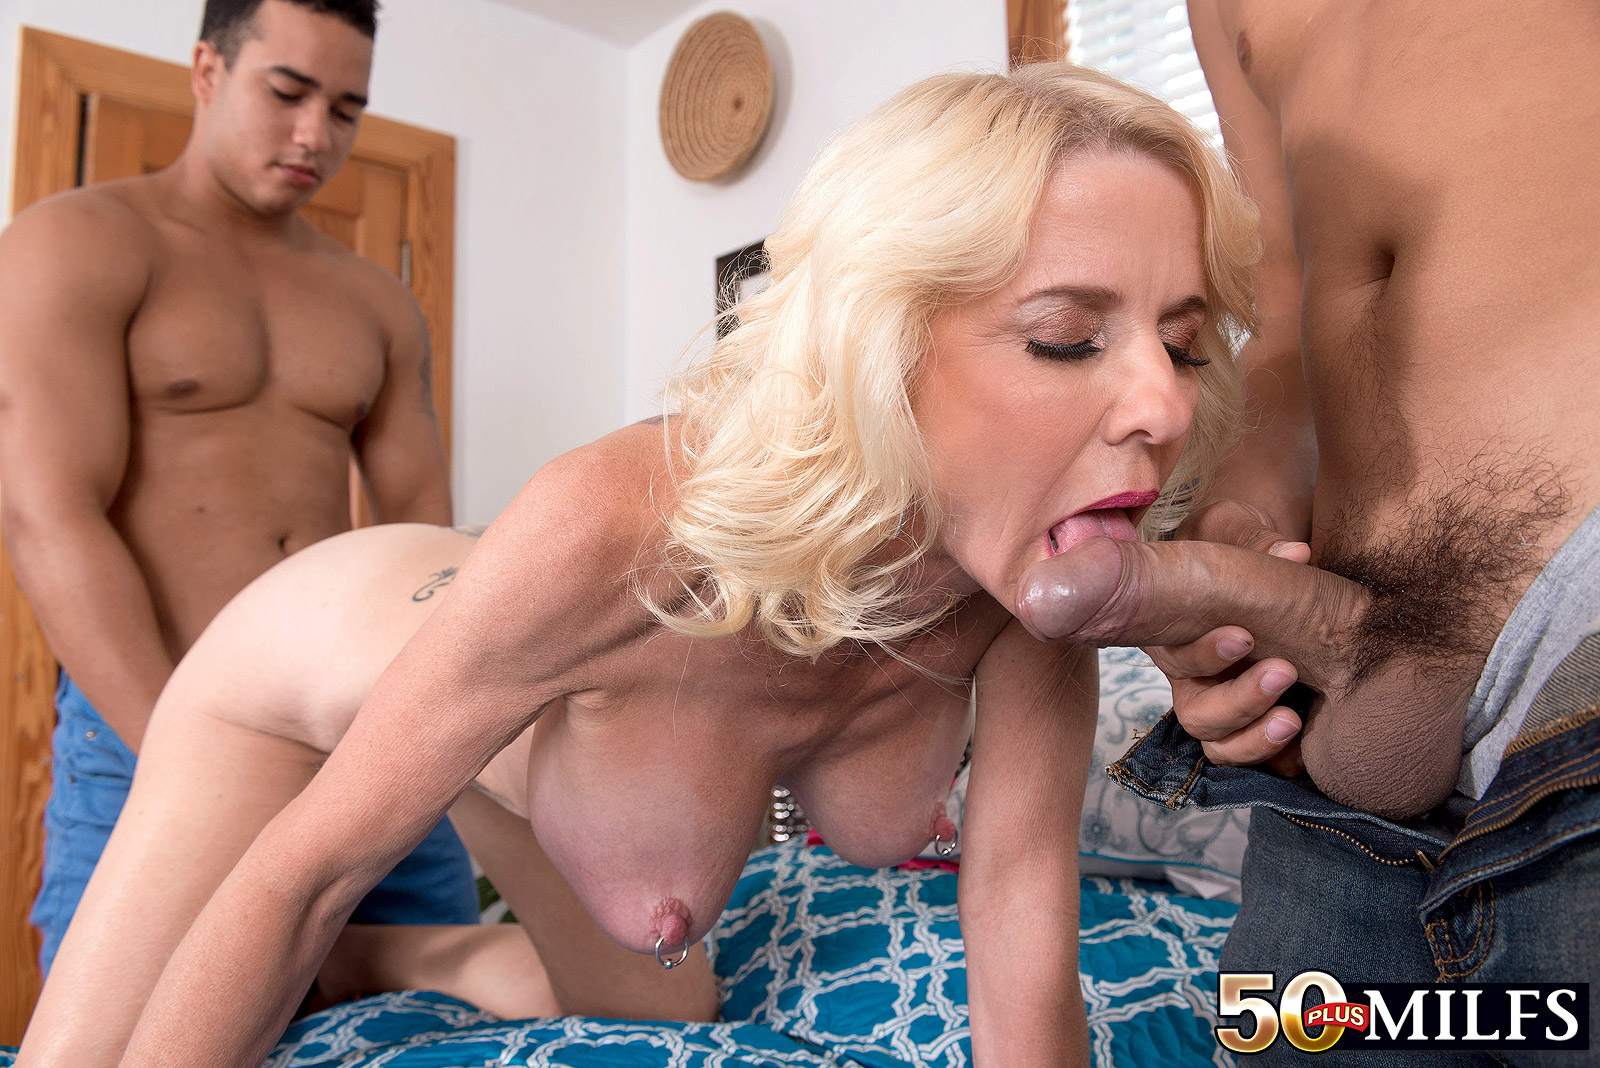 Milf fucks younger guy porn pics